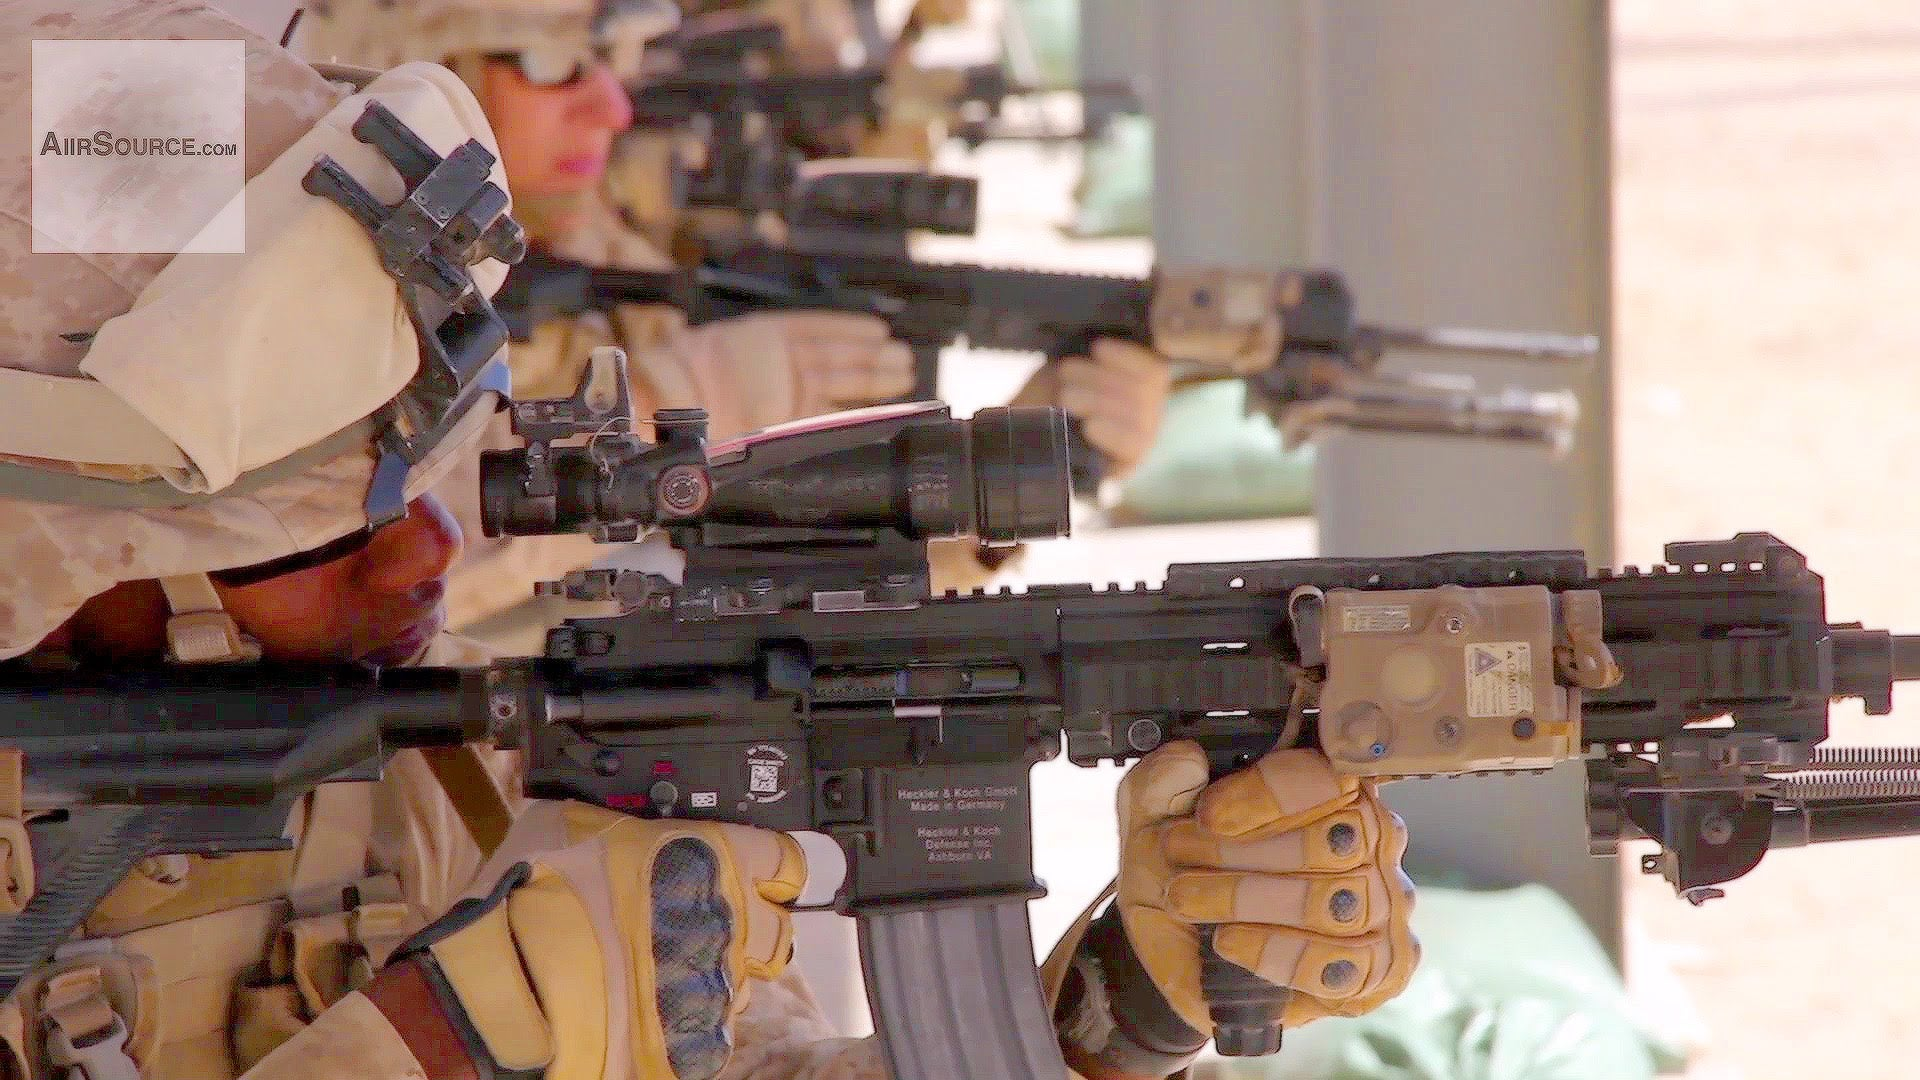 Marines Want 50,000 M27 Rifles from H&K